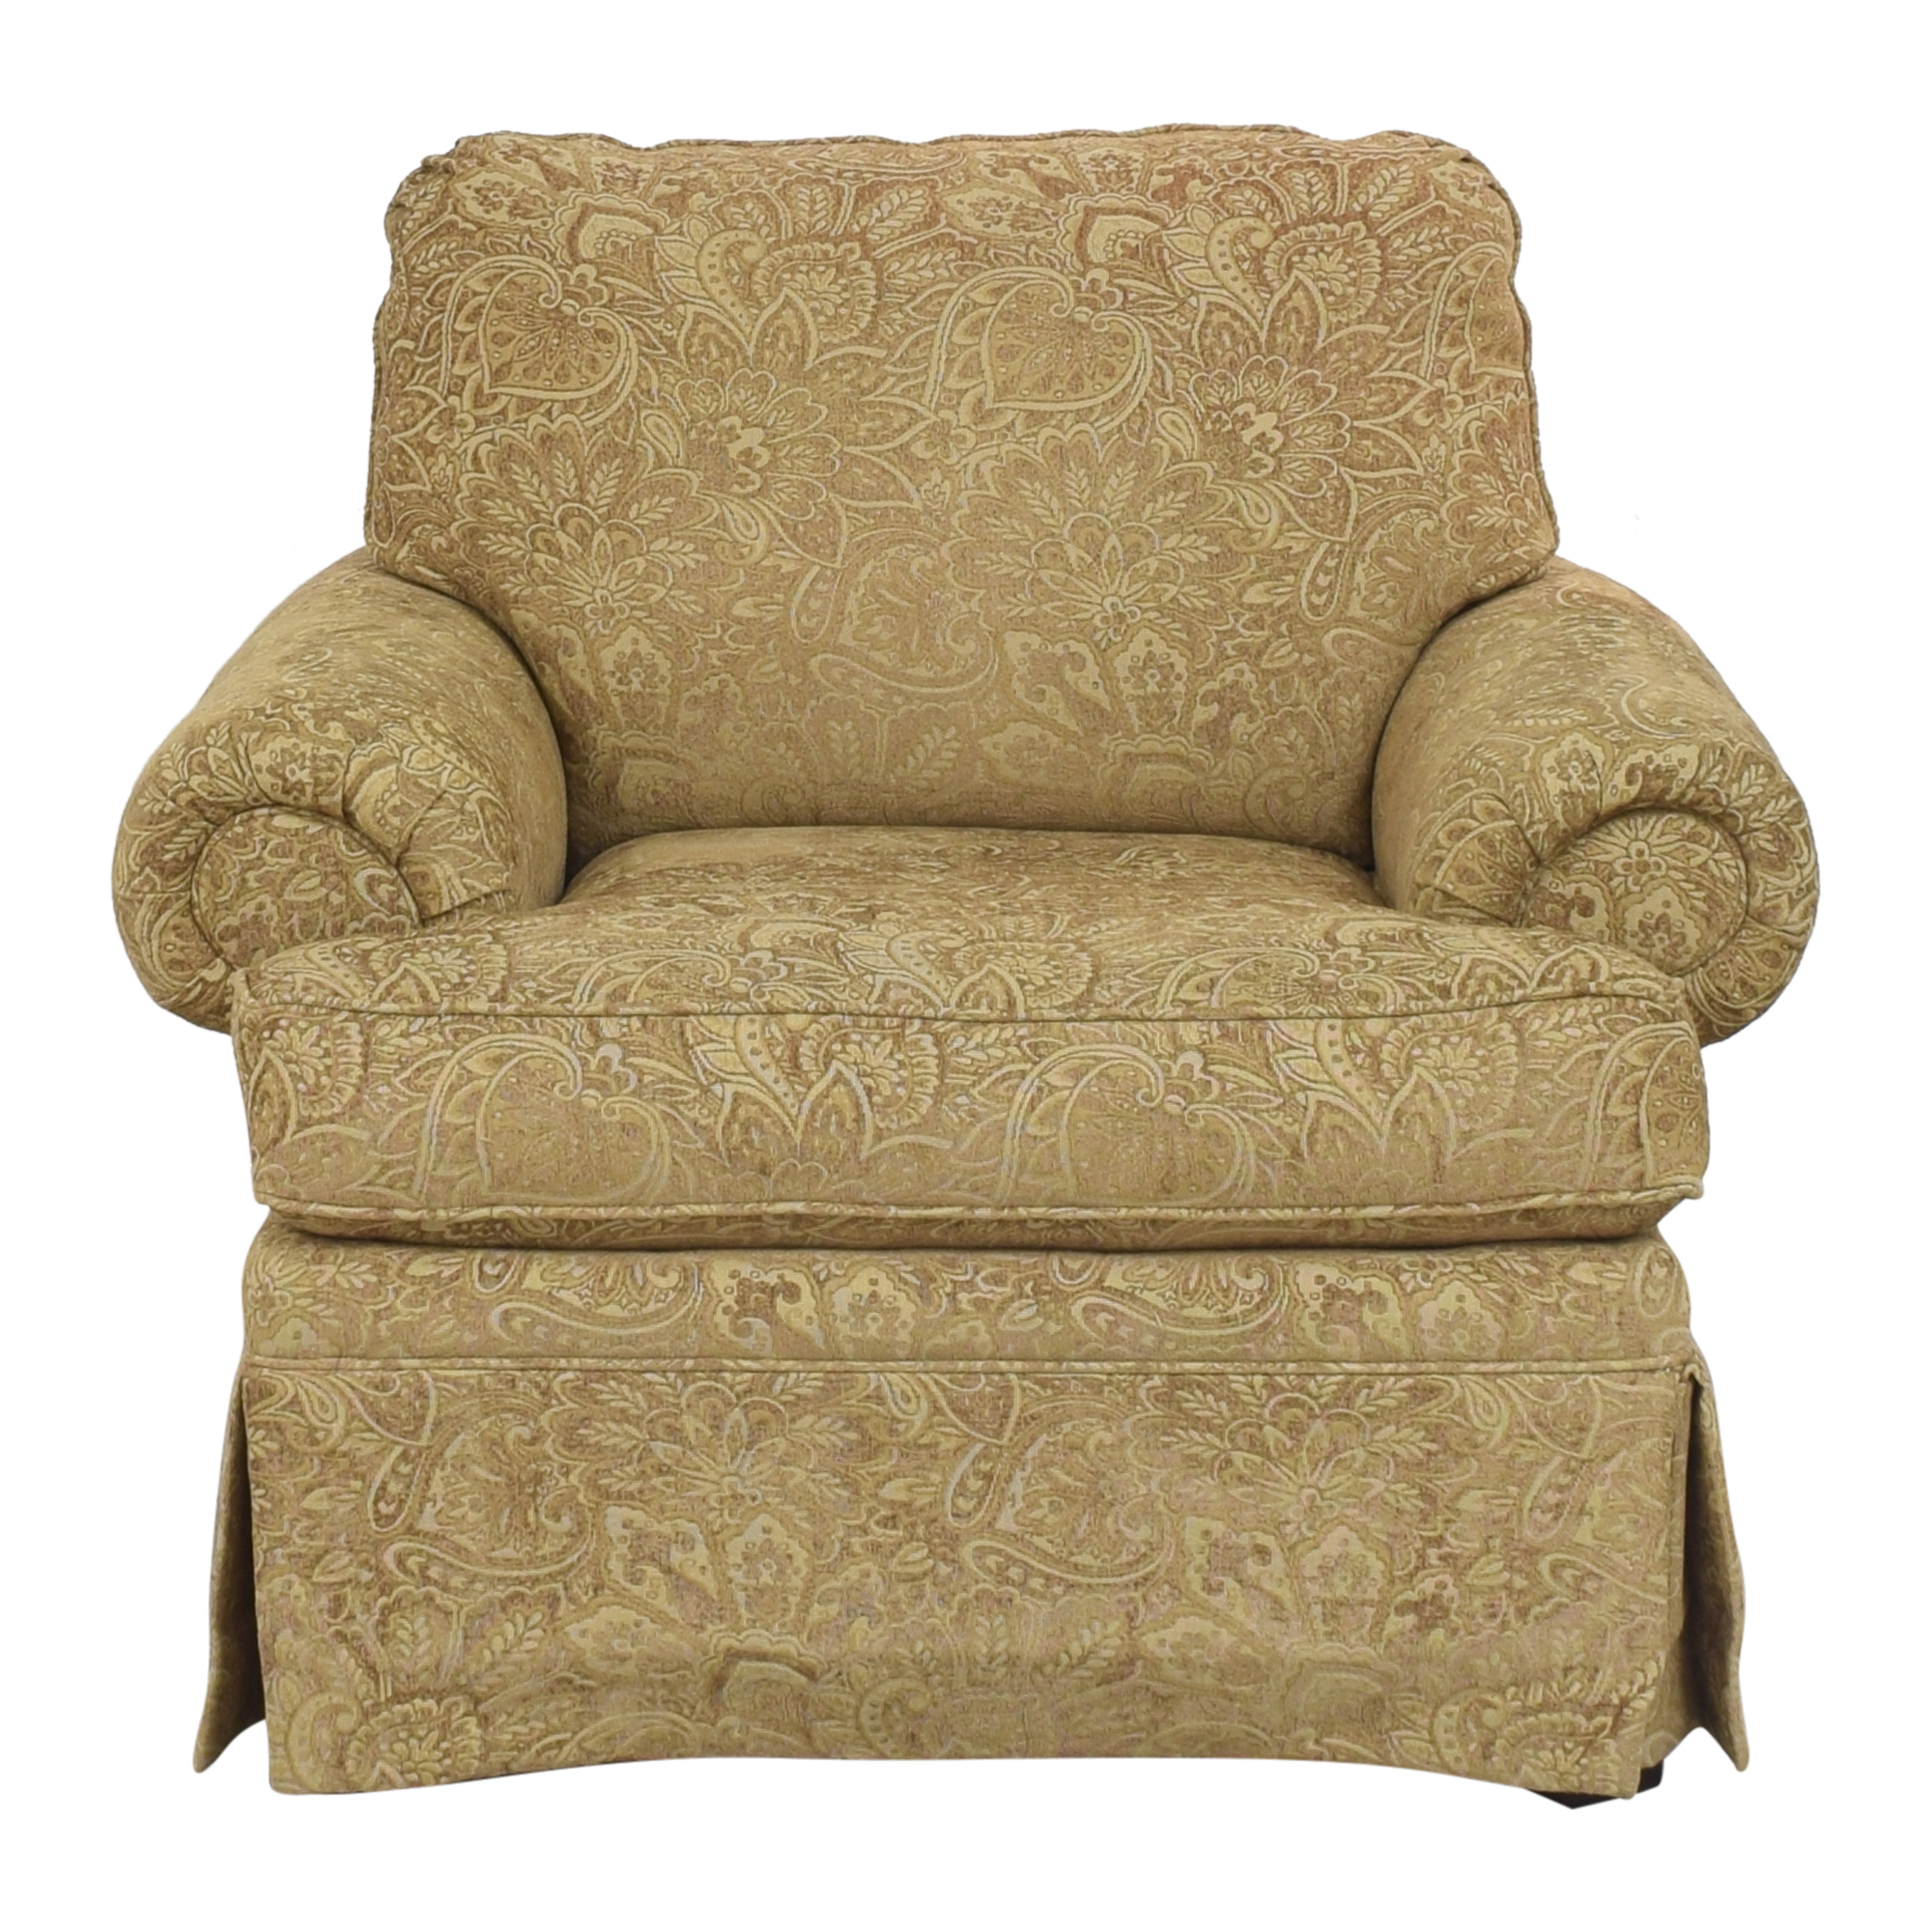 buy Clayton Marcus Clayton Marcus Lauren Roll Arm Chair online